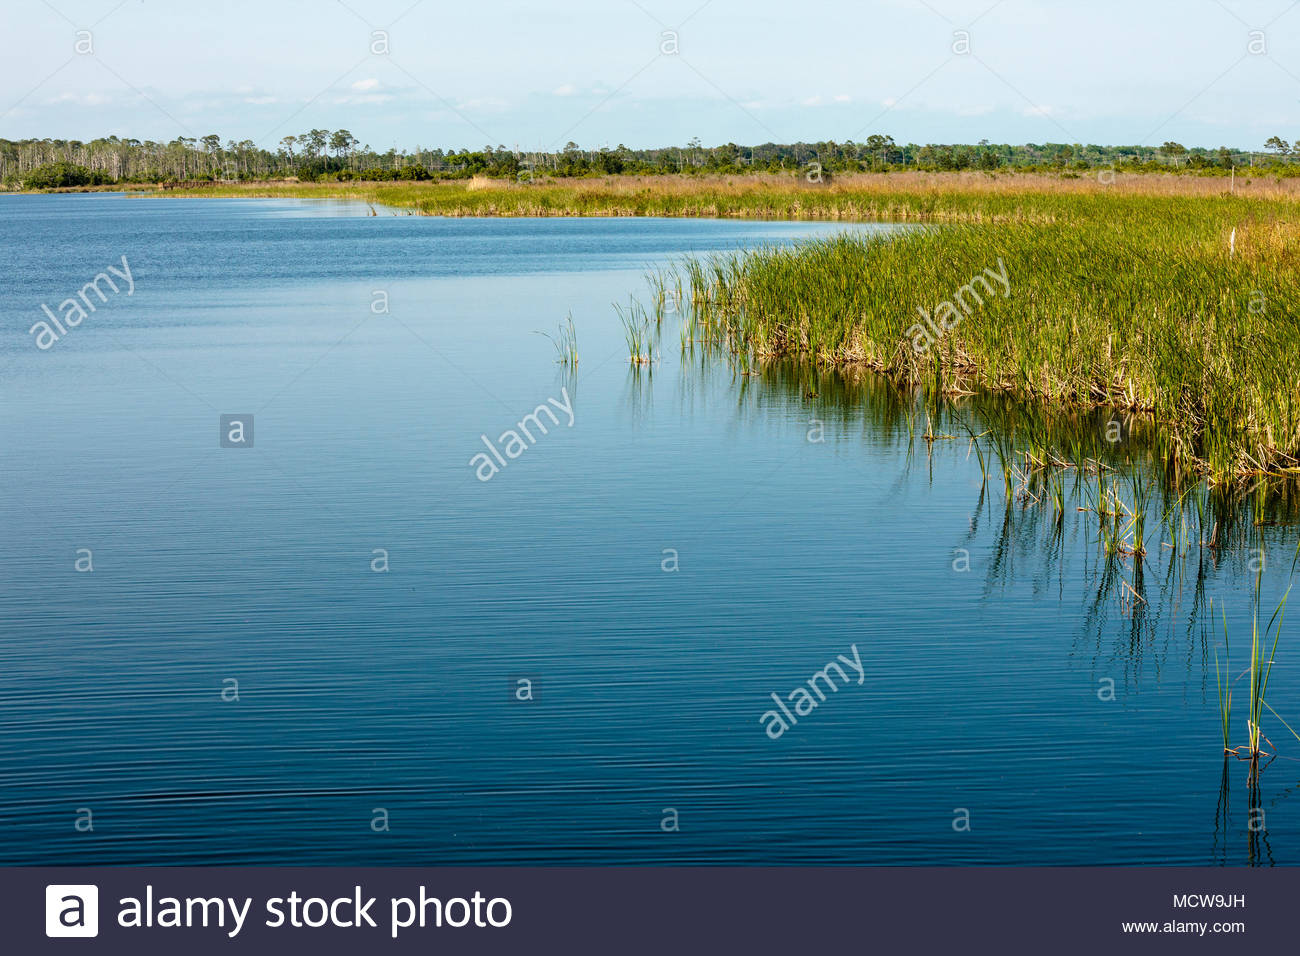 Overlooking the freshwater Lake Shelby in Gulf State Park, Gulf Shores, Alabama in early April Stock Photo